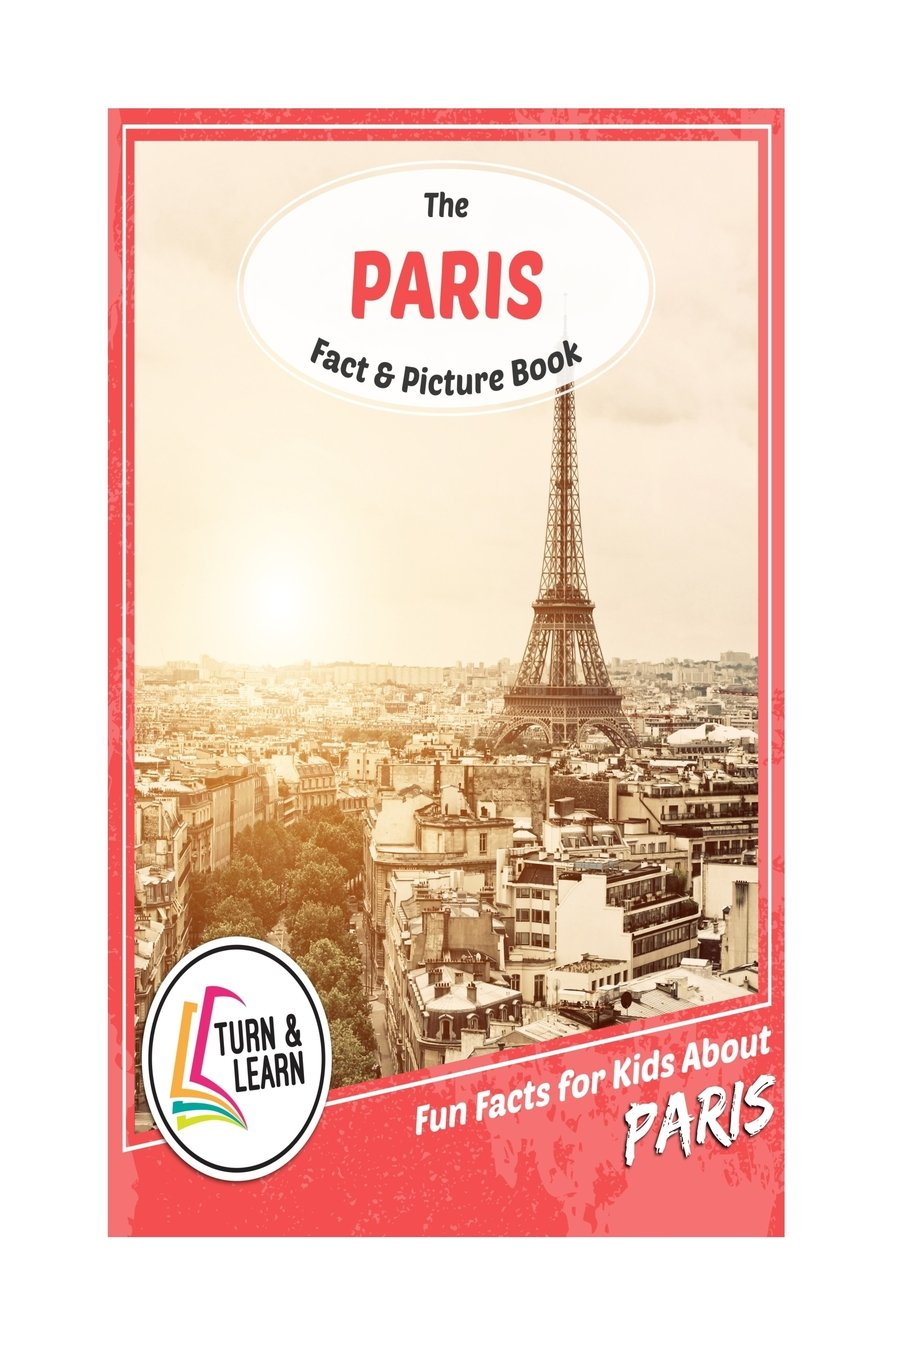 The Paris Fact and Picture Book: Fun Facts for Kids About Paris (Turn and Learn)